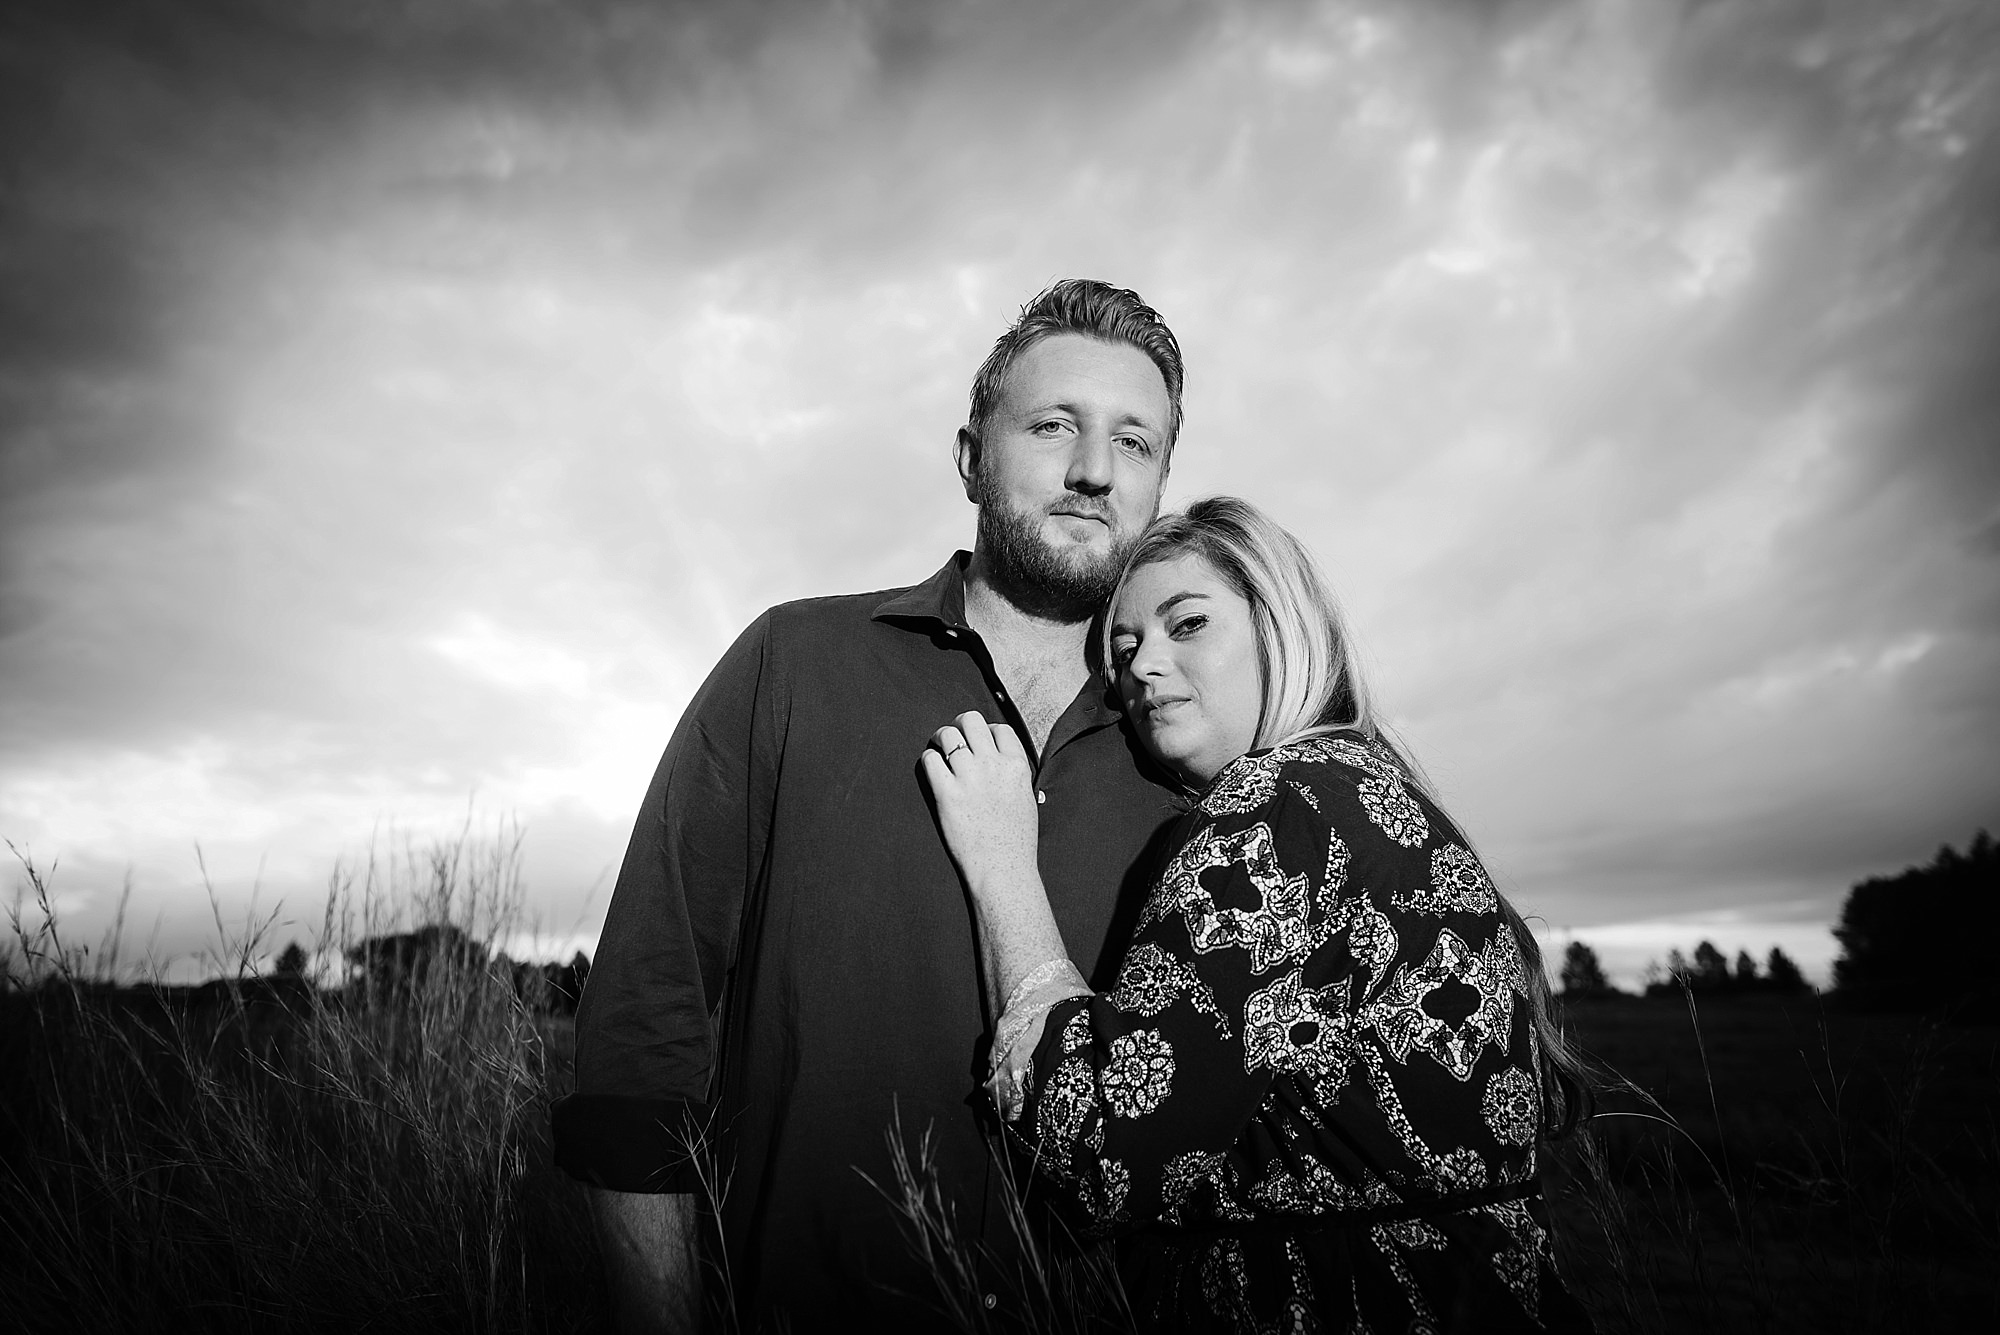 Wynandvandermerwe david irene engagement shoot nature gauteng26.jpg